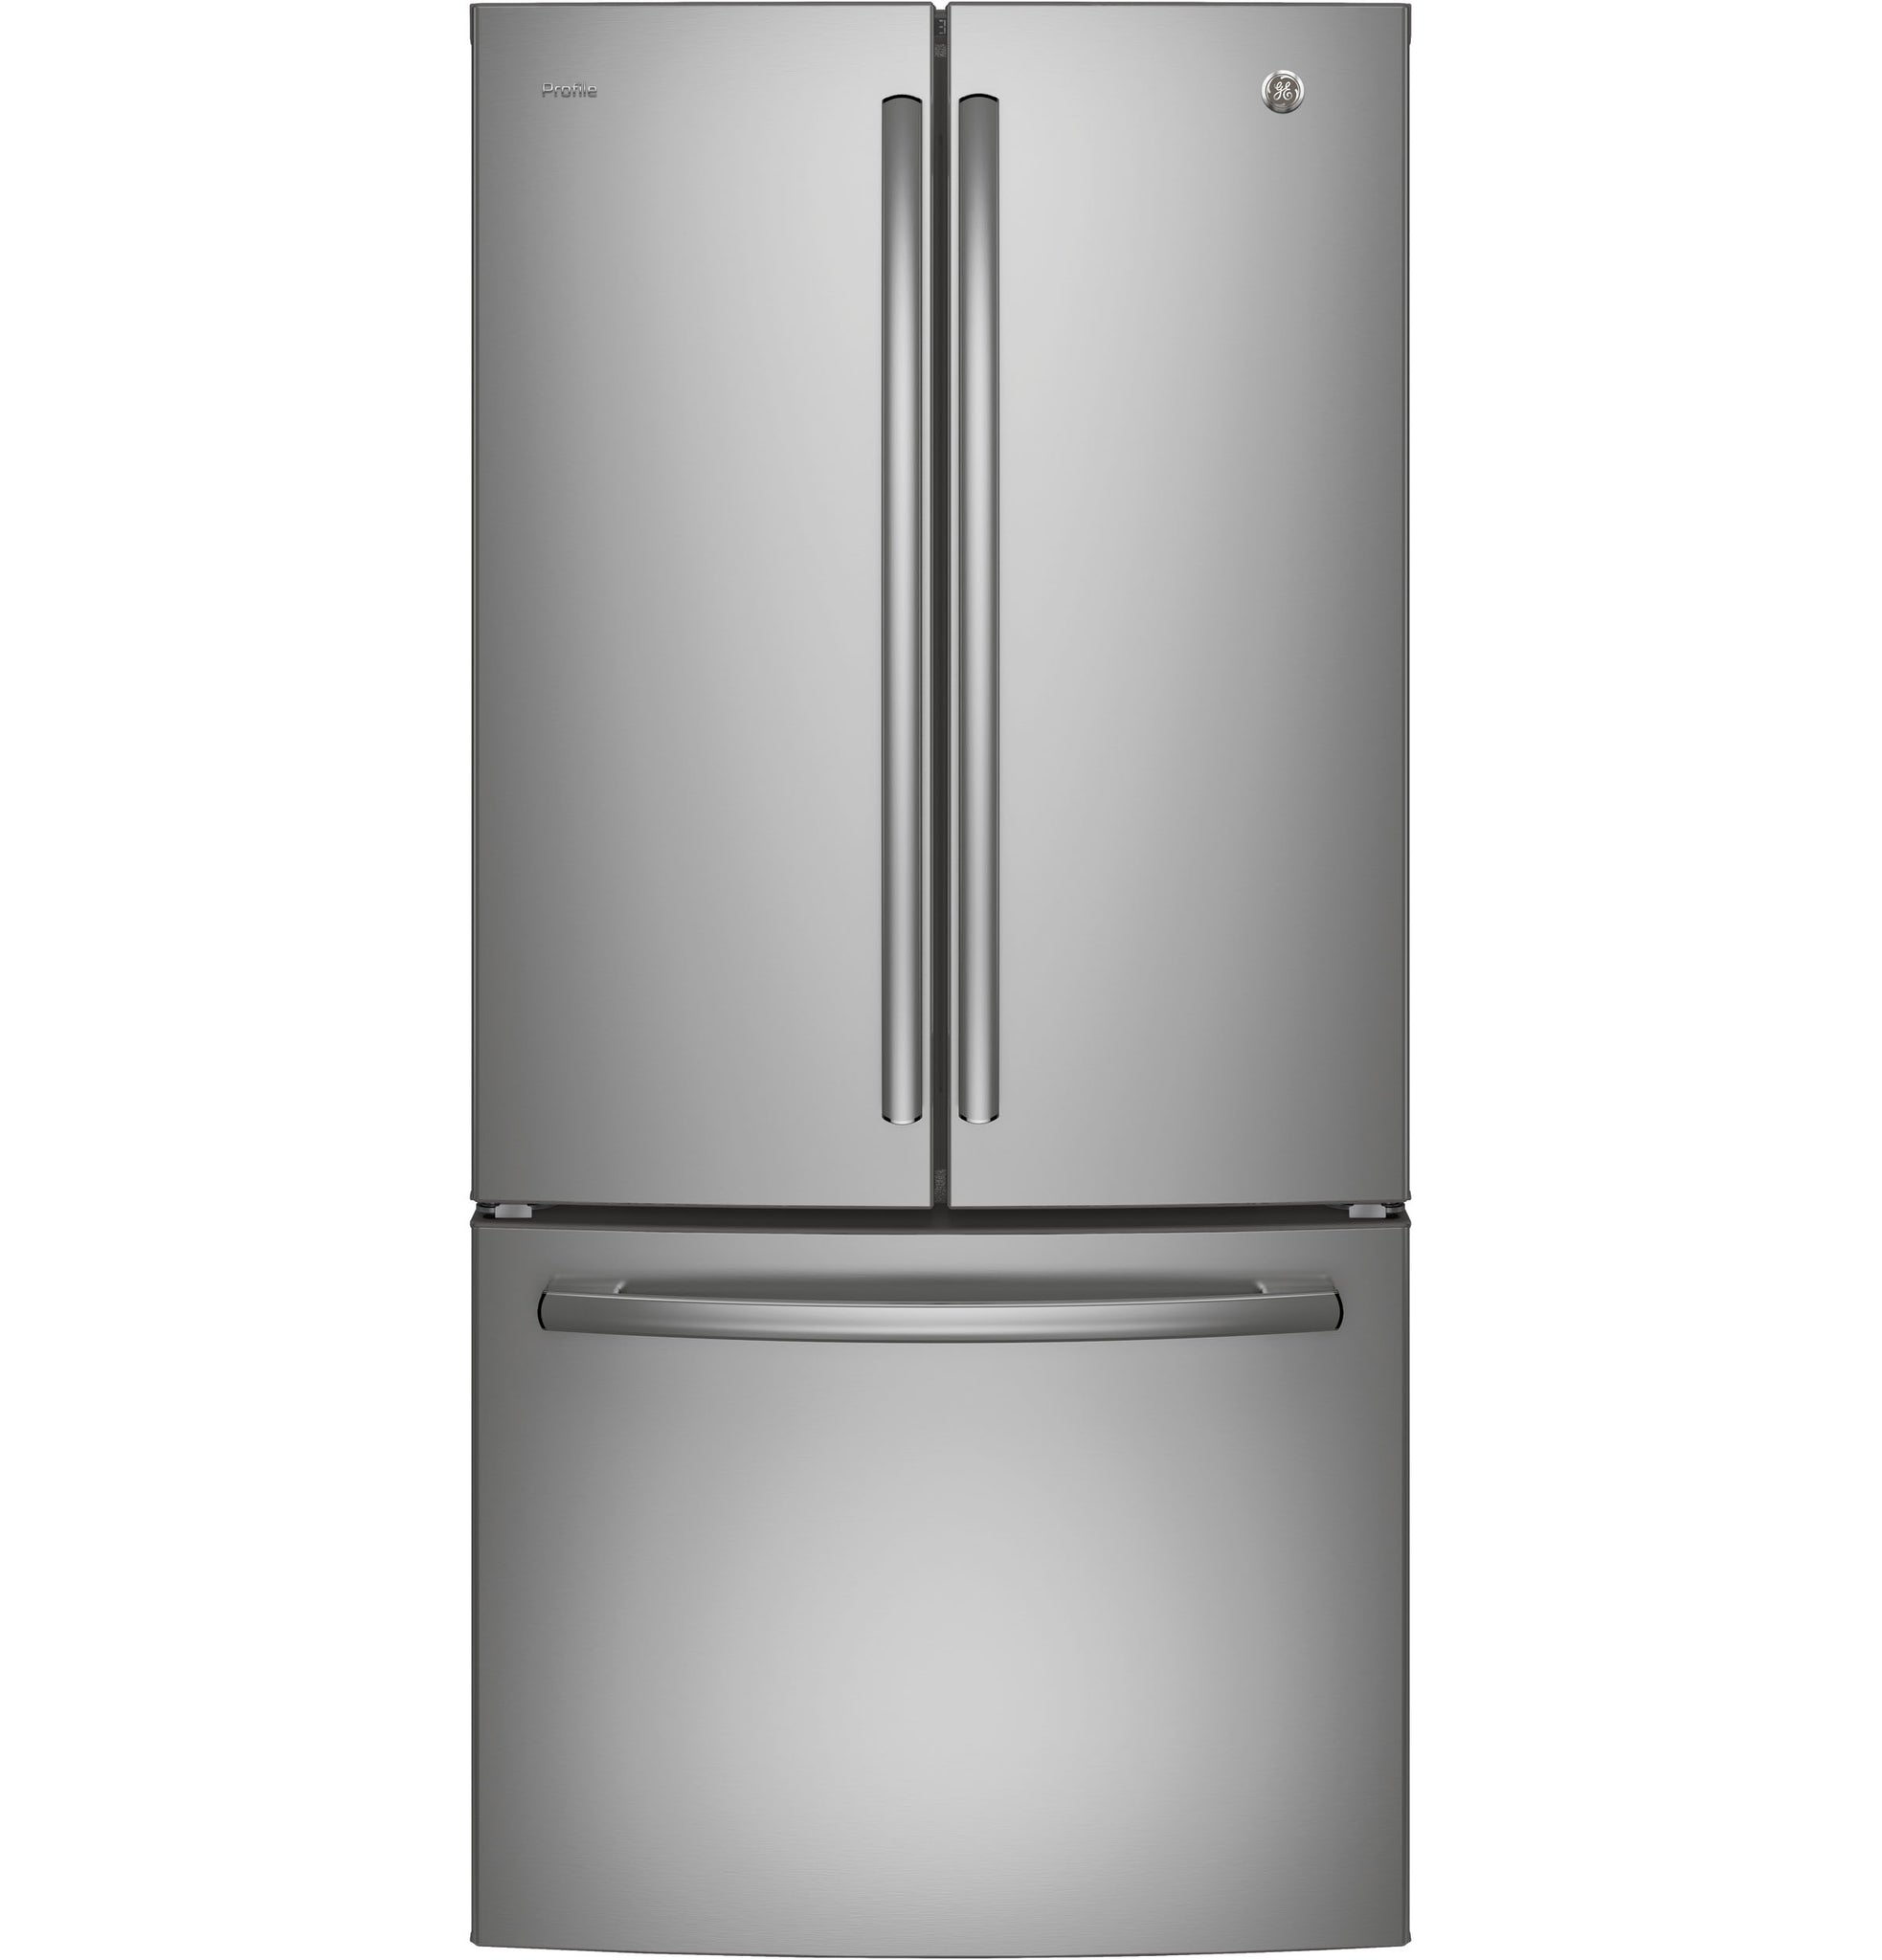 GE Profile Stainless 25 CU.FT Fridge, With Internal Water/Ice